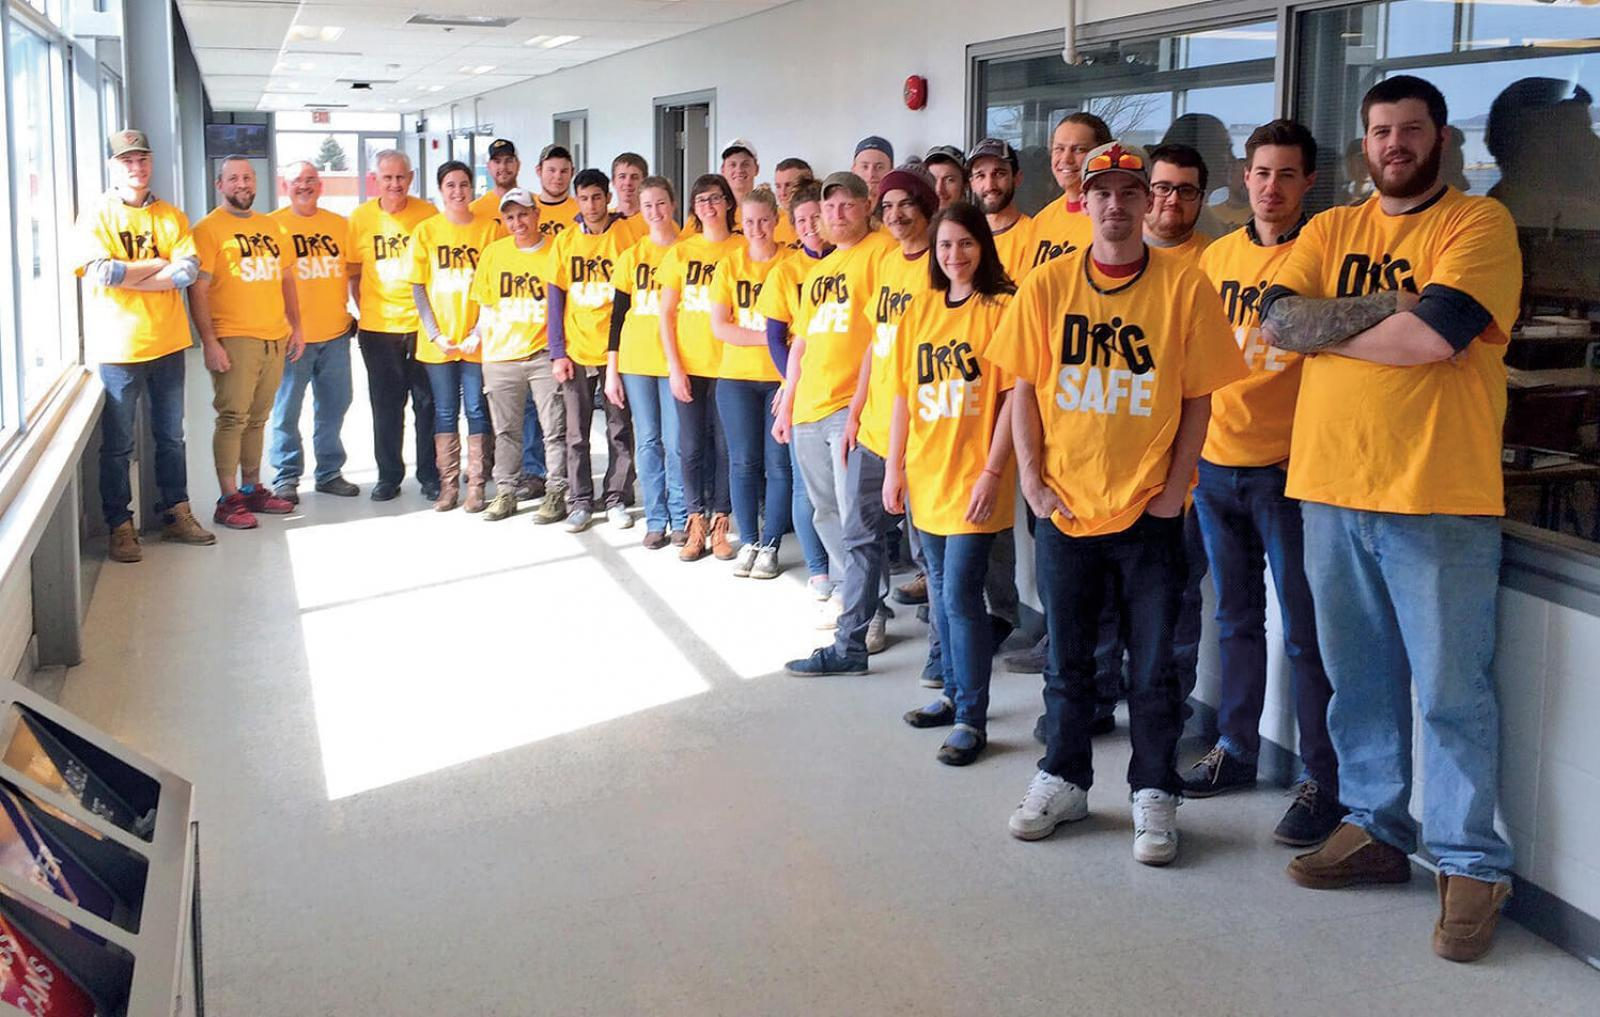 The annual Dig Safe public awareness campaign included an event at Mohawk College on Mar. 9.